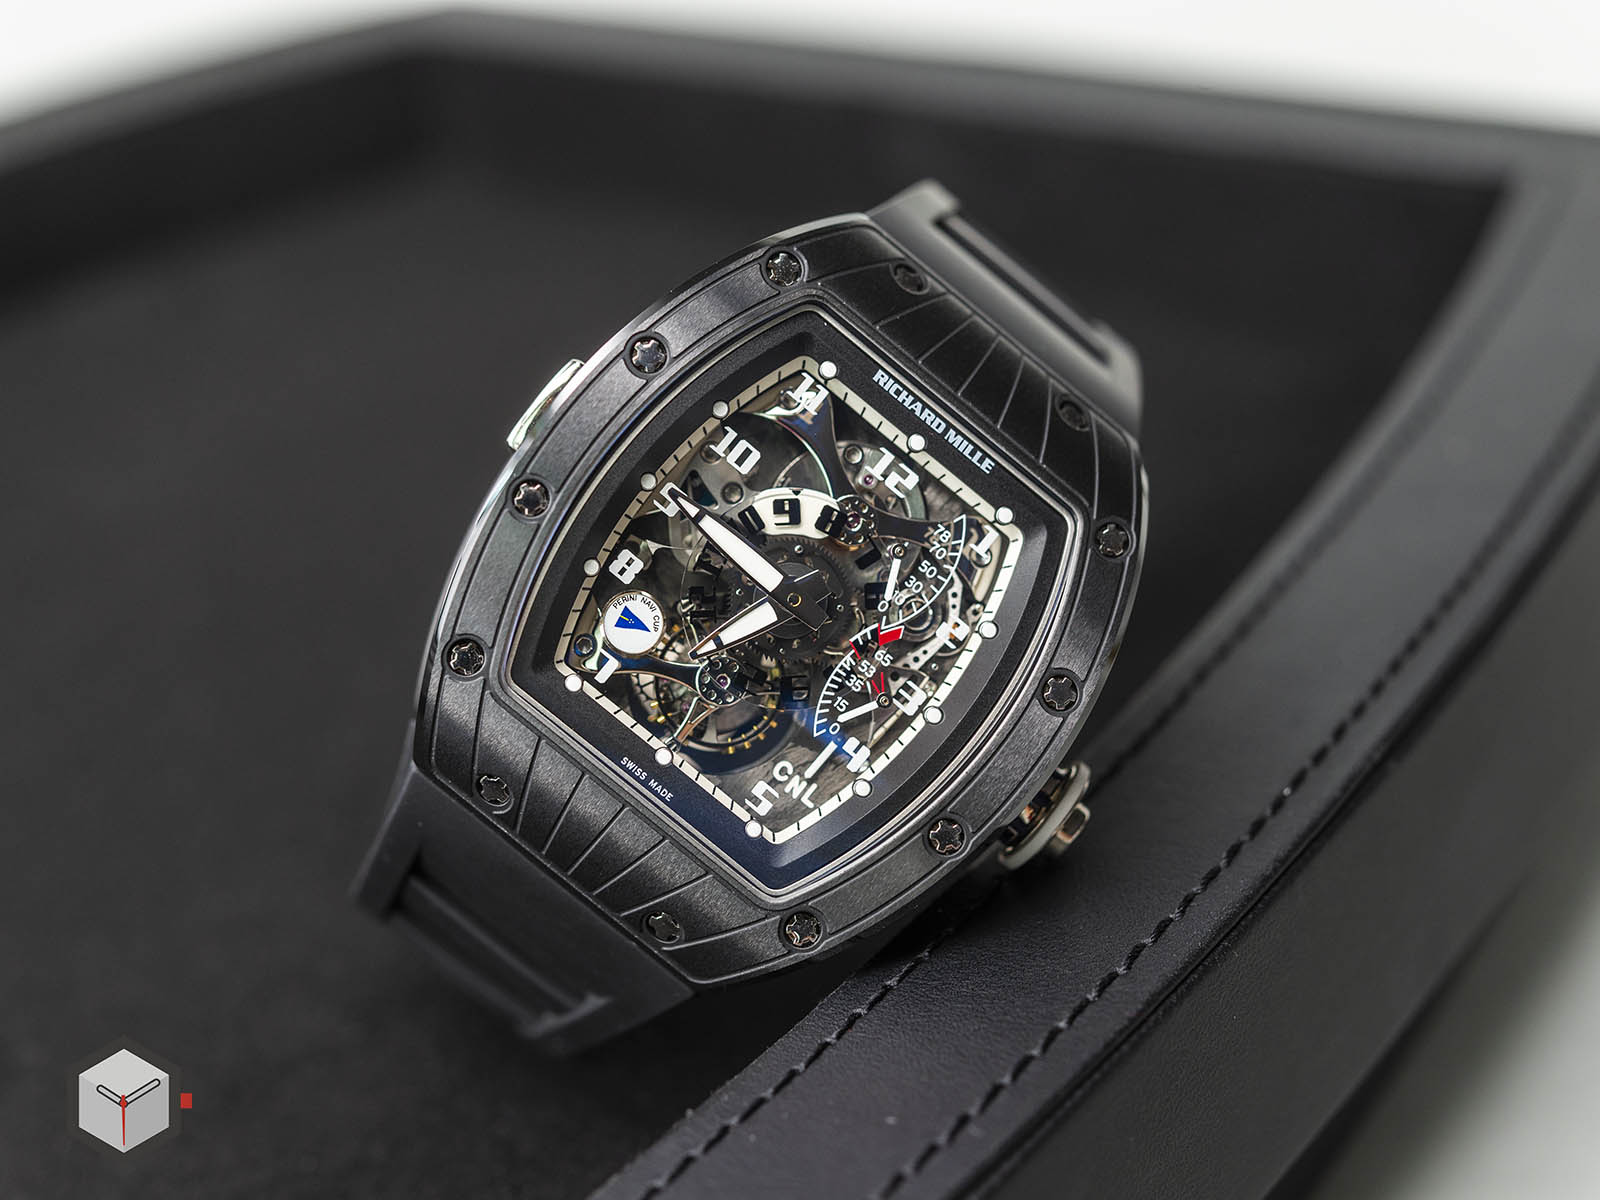 richard-mille-rm015-tourbillon-dual-time-zone-perini-navi-cup-3.jpg